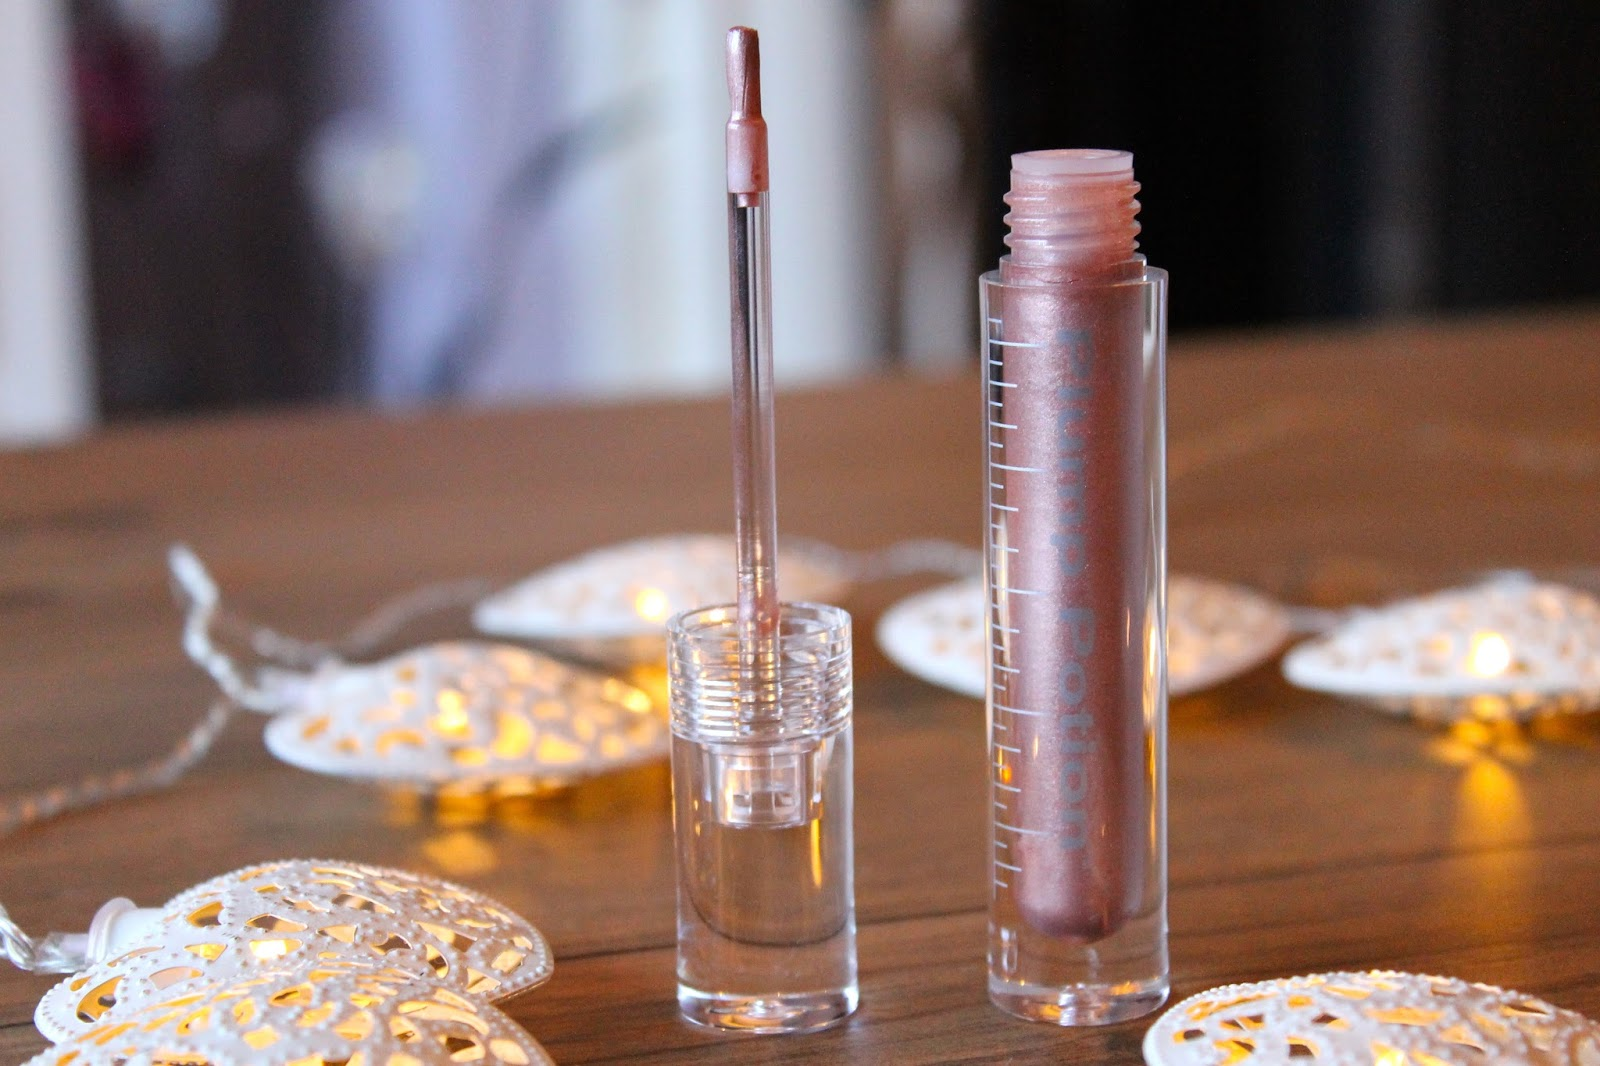 Physicians formula plump lipgloss review